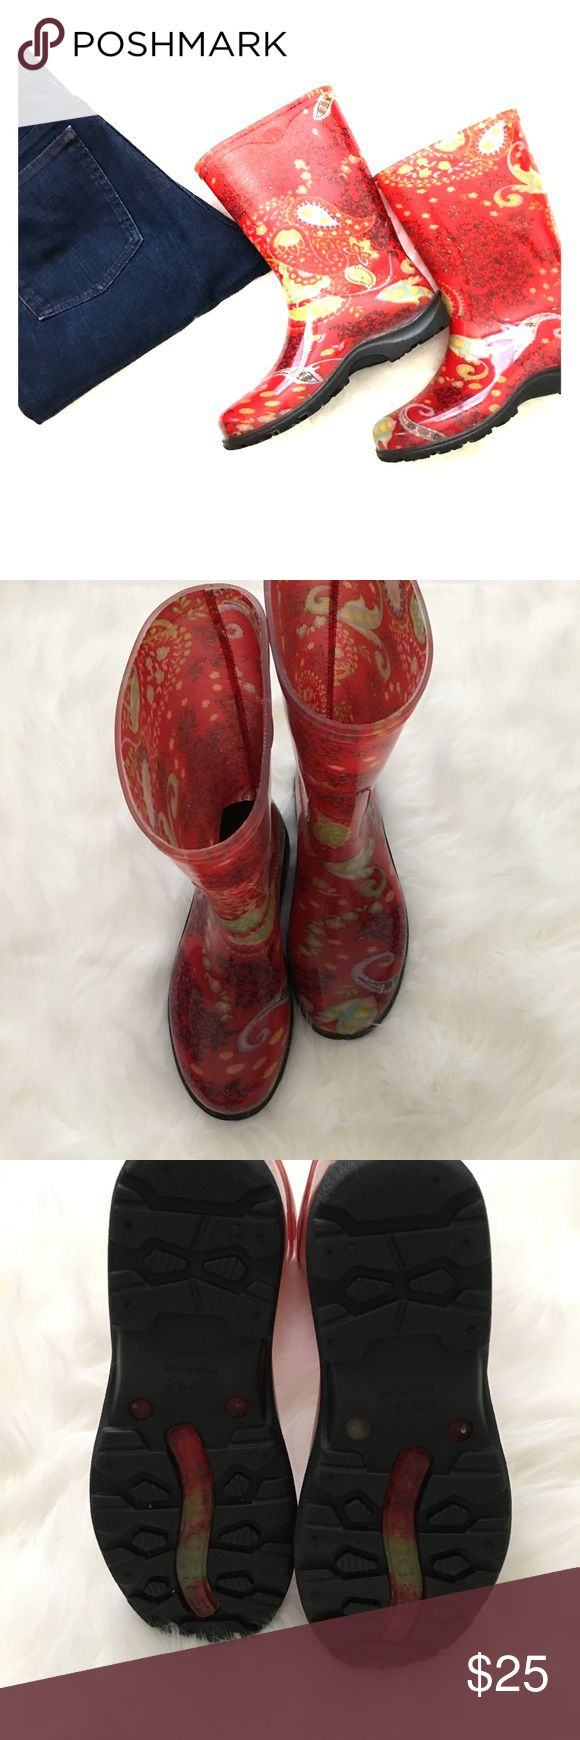 "NWT Slogger rain boots NWT size 7 Slogger rain boots. Red paisley design black rubber slip resistant sole. 10"" high 7"" opening. Shoes"